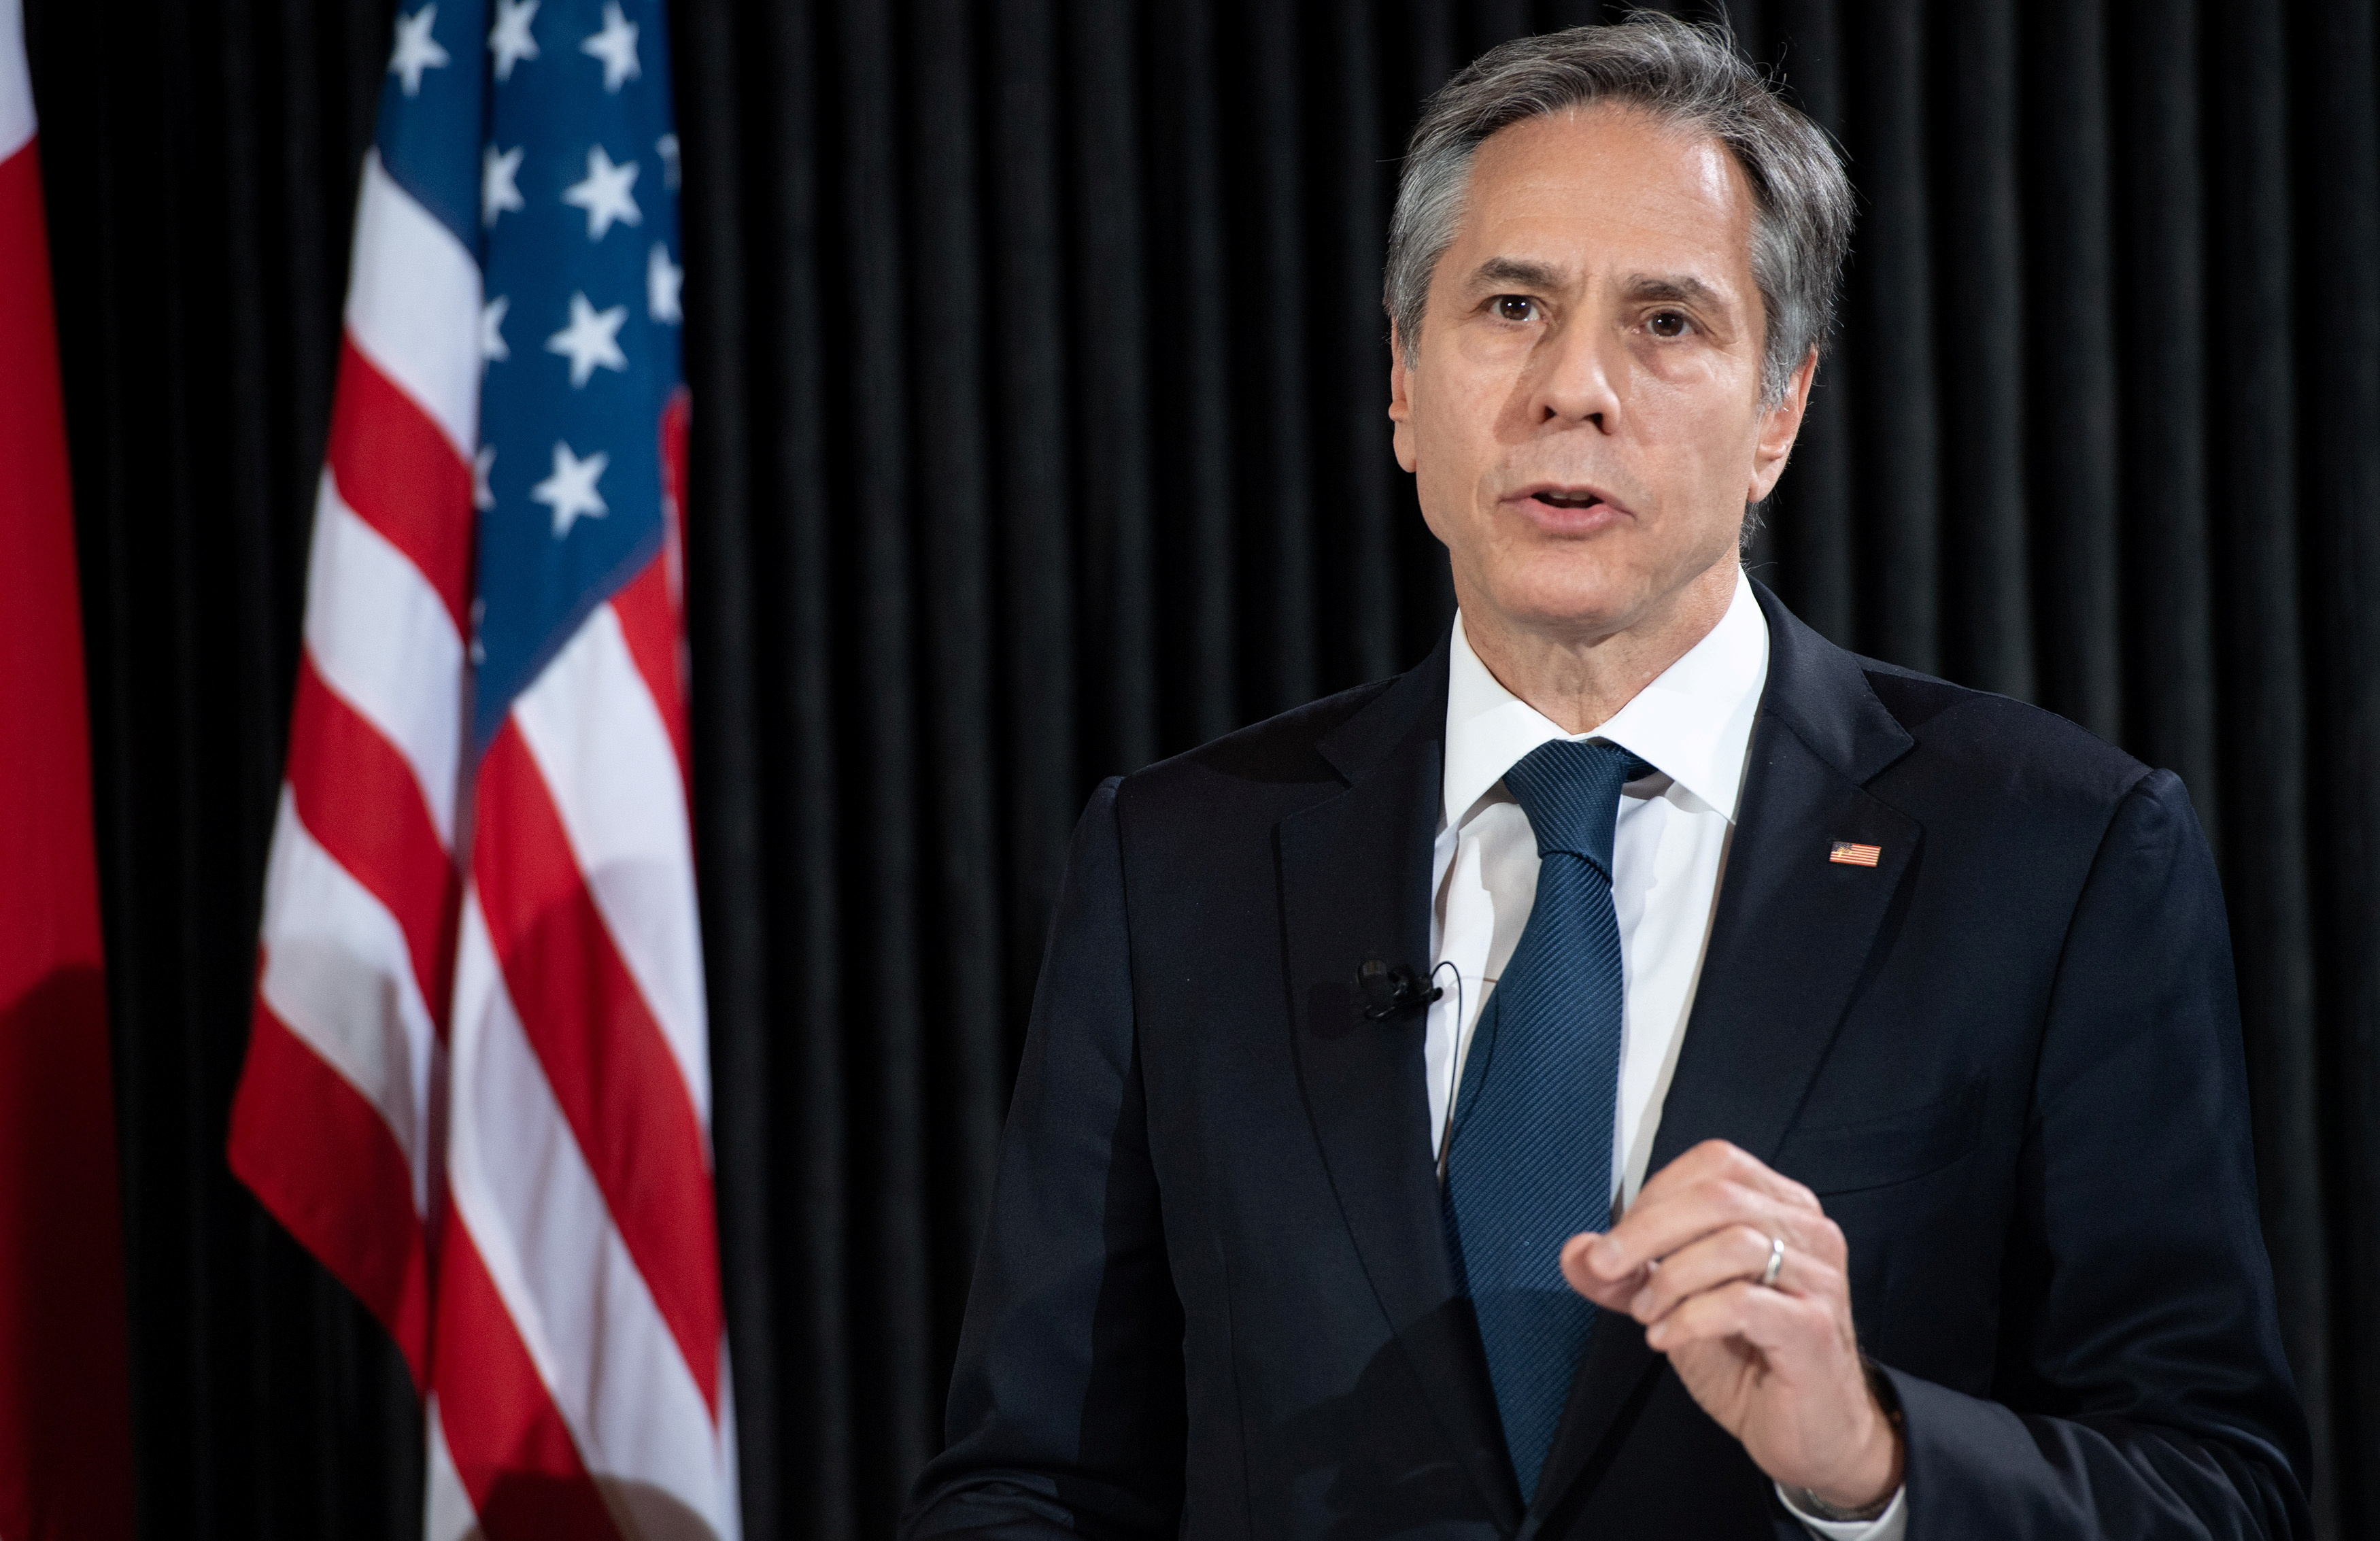 U.S. Secretary of State Antony Blinken speaks at a news conference following meetings at the Danish Foreign Ministry, Eigtved's Warehouse, in Copenhagen, Denmark, May 17, 2021. Saul Loeb/Pool via REUTERS